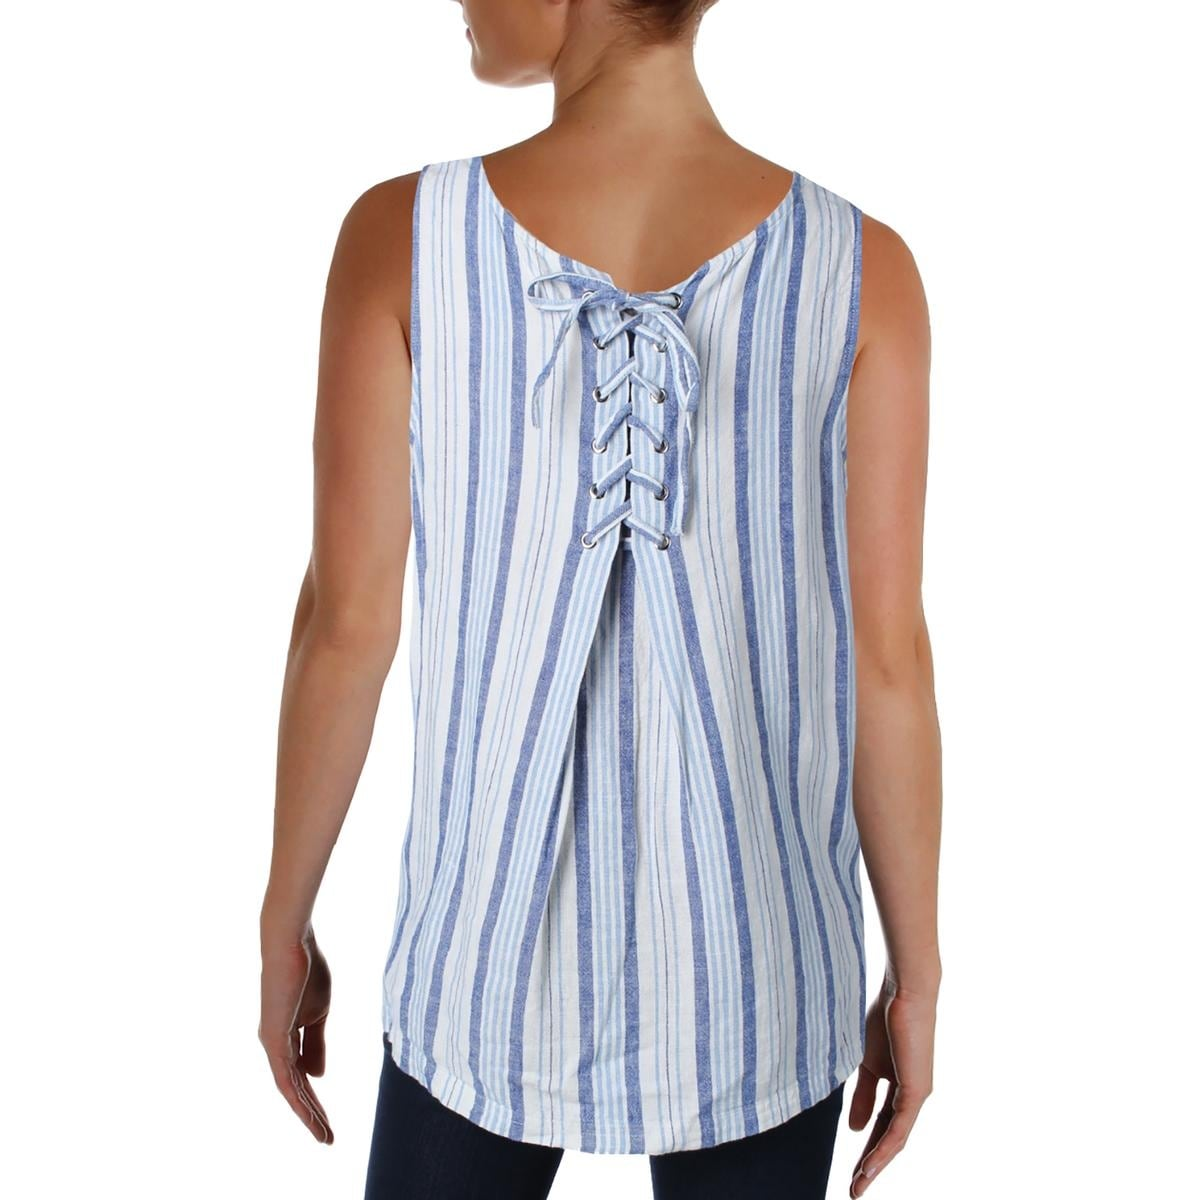 dc413d7c4d Shop Two by Vince Camuto Womens Summer Breeze Tank Top Linen Blend Striped  - On Sale - Free Shipping On Orders Over  45 - Overstock - 20820085